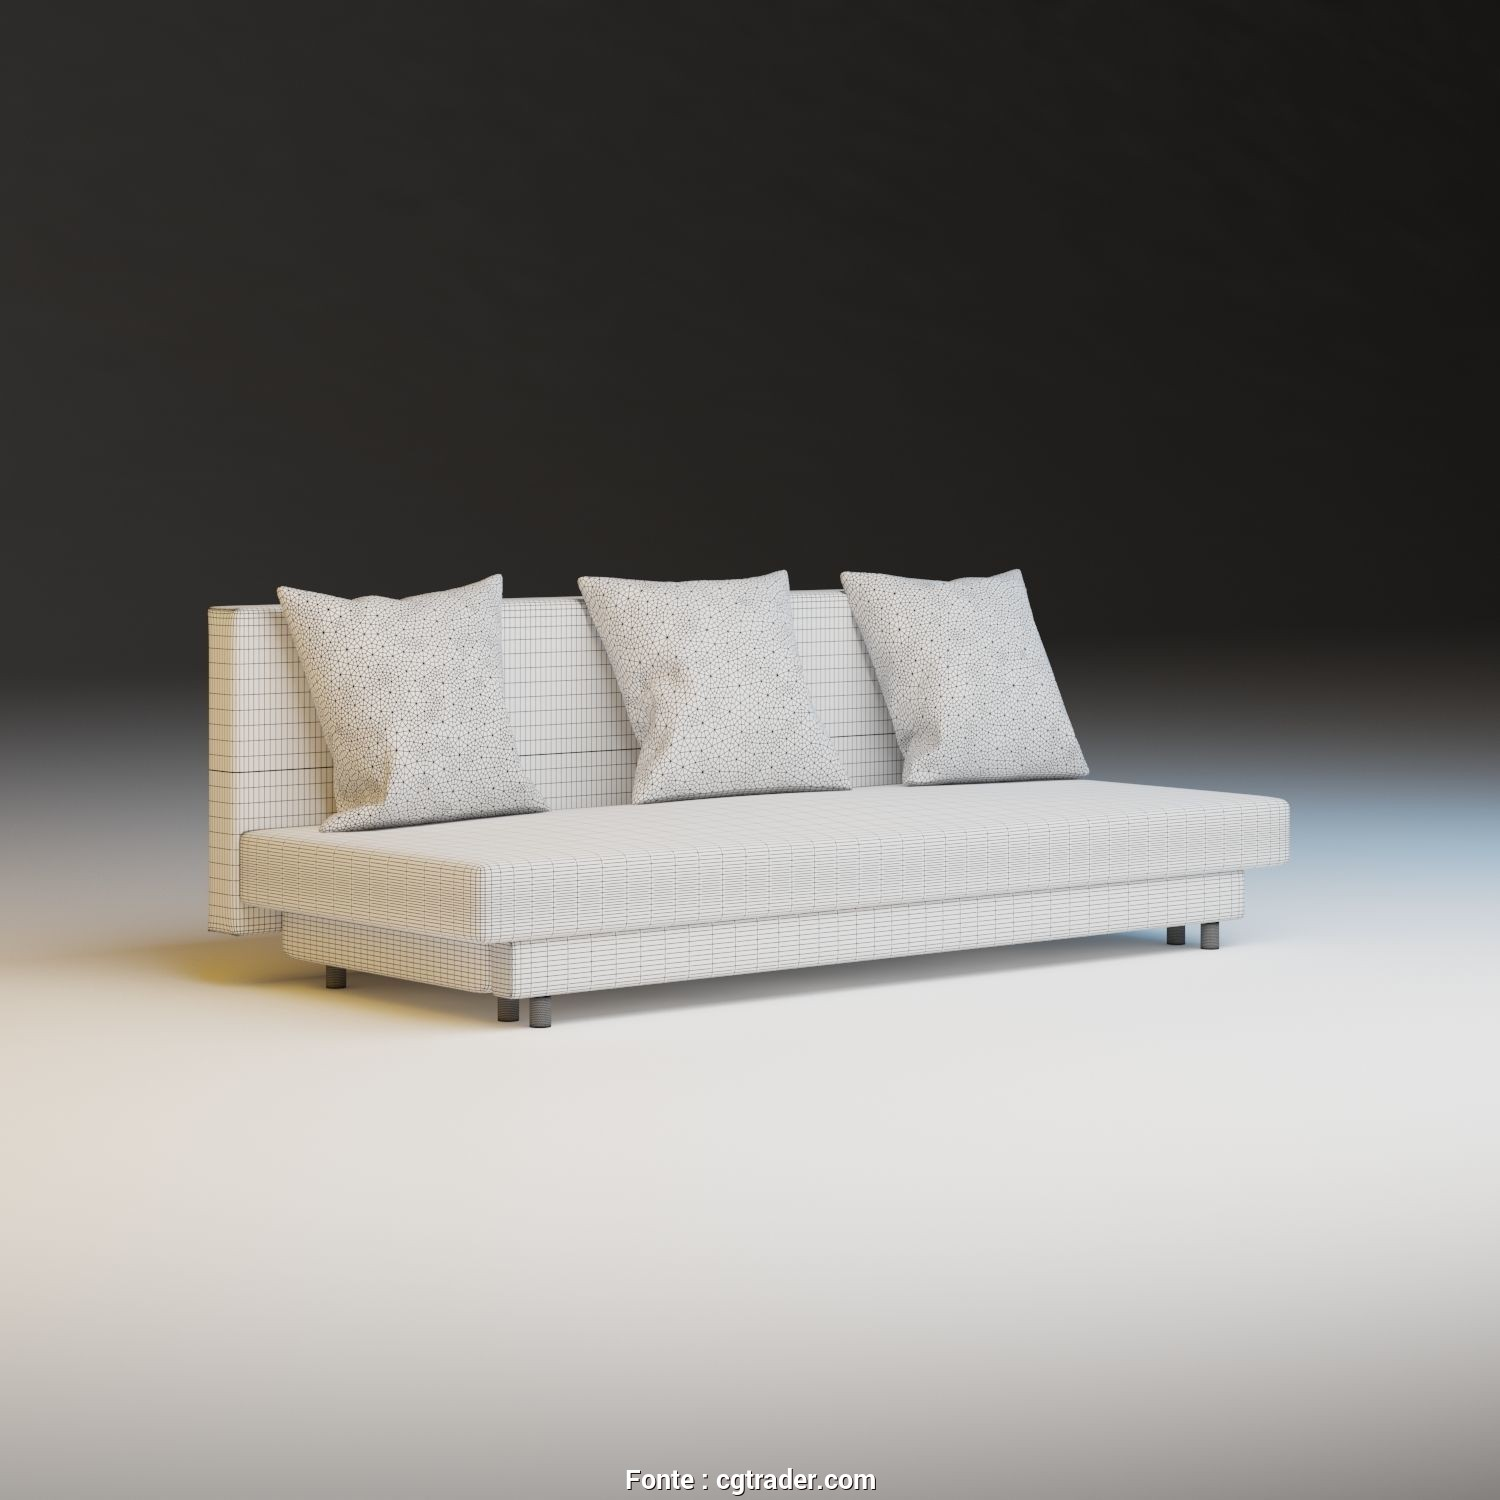 Ikea Asarum Sofa, Review, Semplice ... Ikea, Asarum Sofa 3D Model, Obj, 3Ds, 2